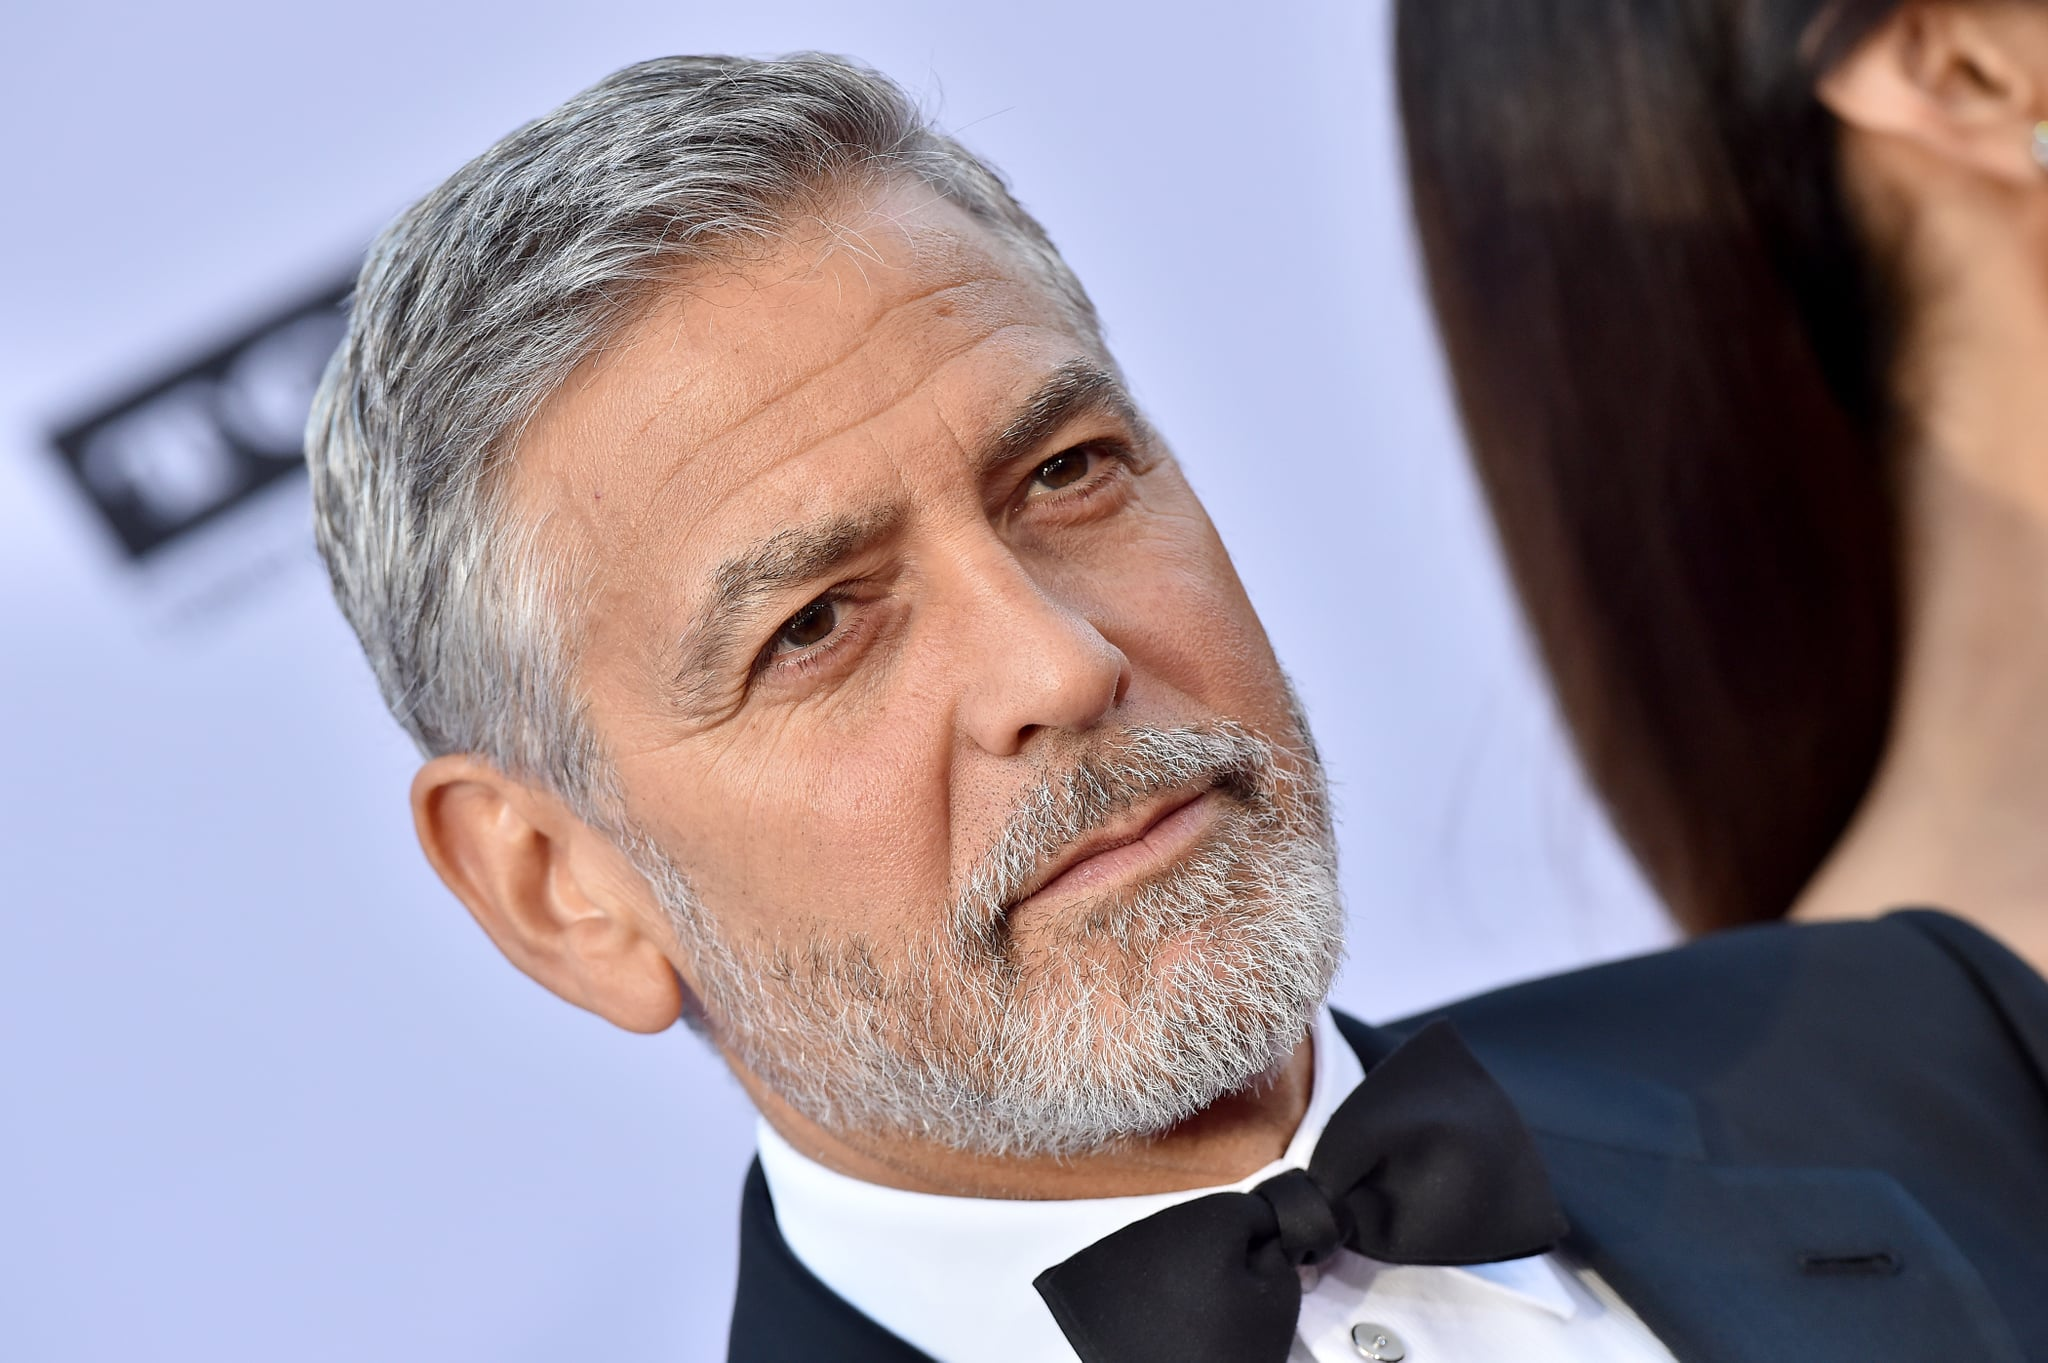 HOLLYWOOD, CA - JUNE 07:  Actor George Clooney arrives at the American Film Institute's 46th Life Achievement Award Gala Tribute to George Clooney on June 7, 2018 in Hollywood, California.  (Photo by Axelle/Bauer-Griffin/FilmMagic)